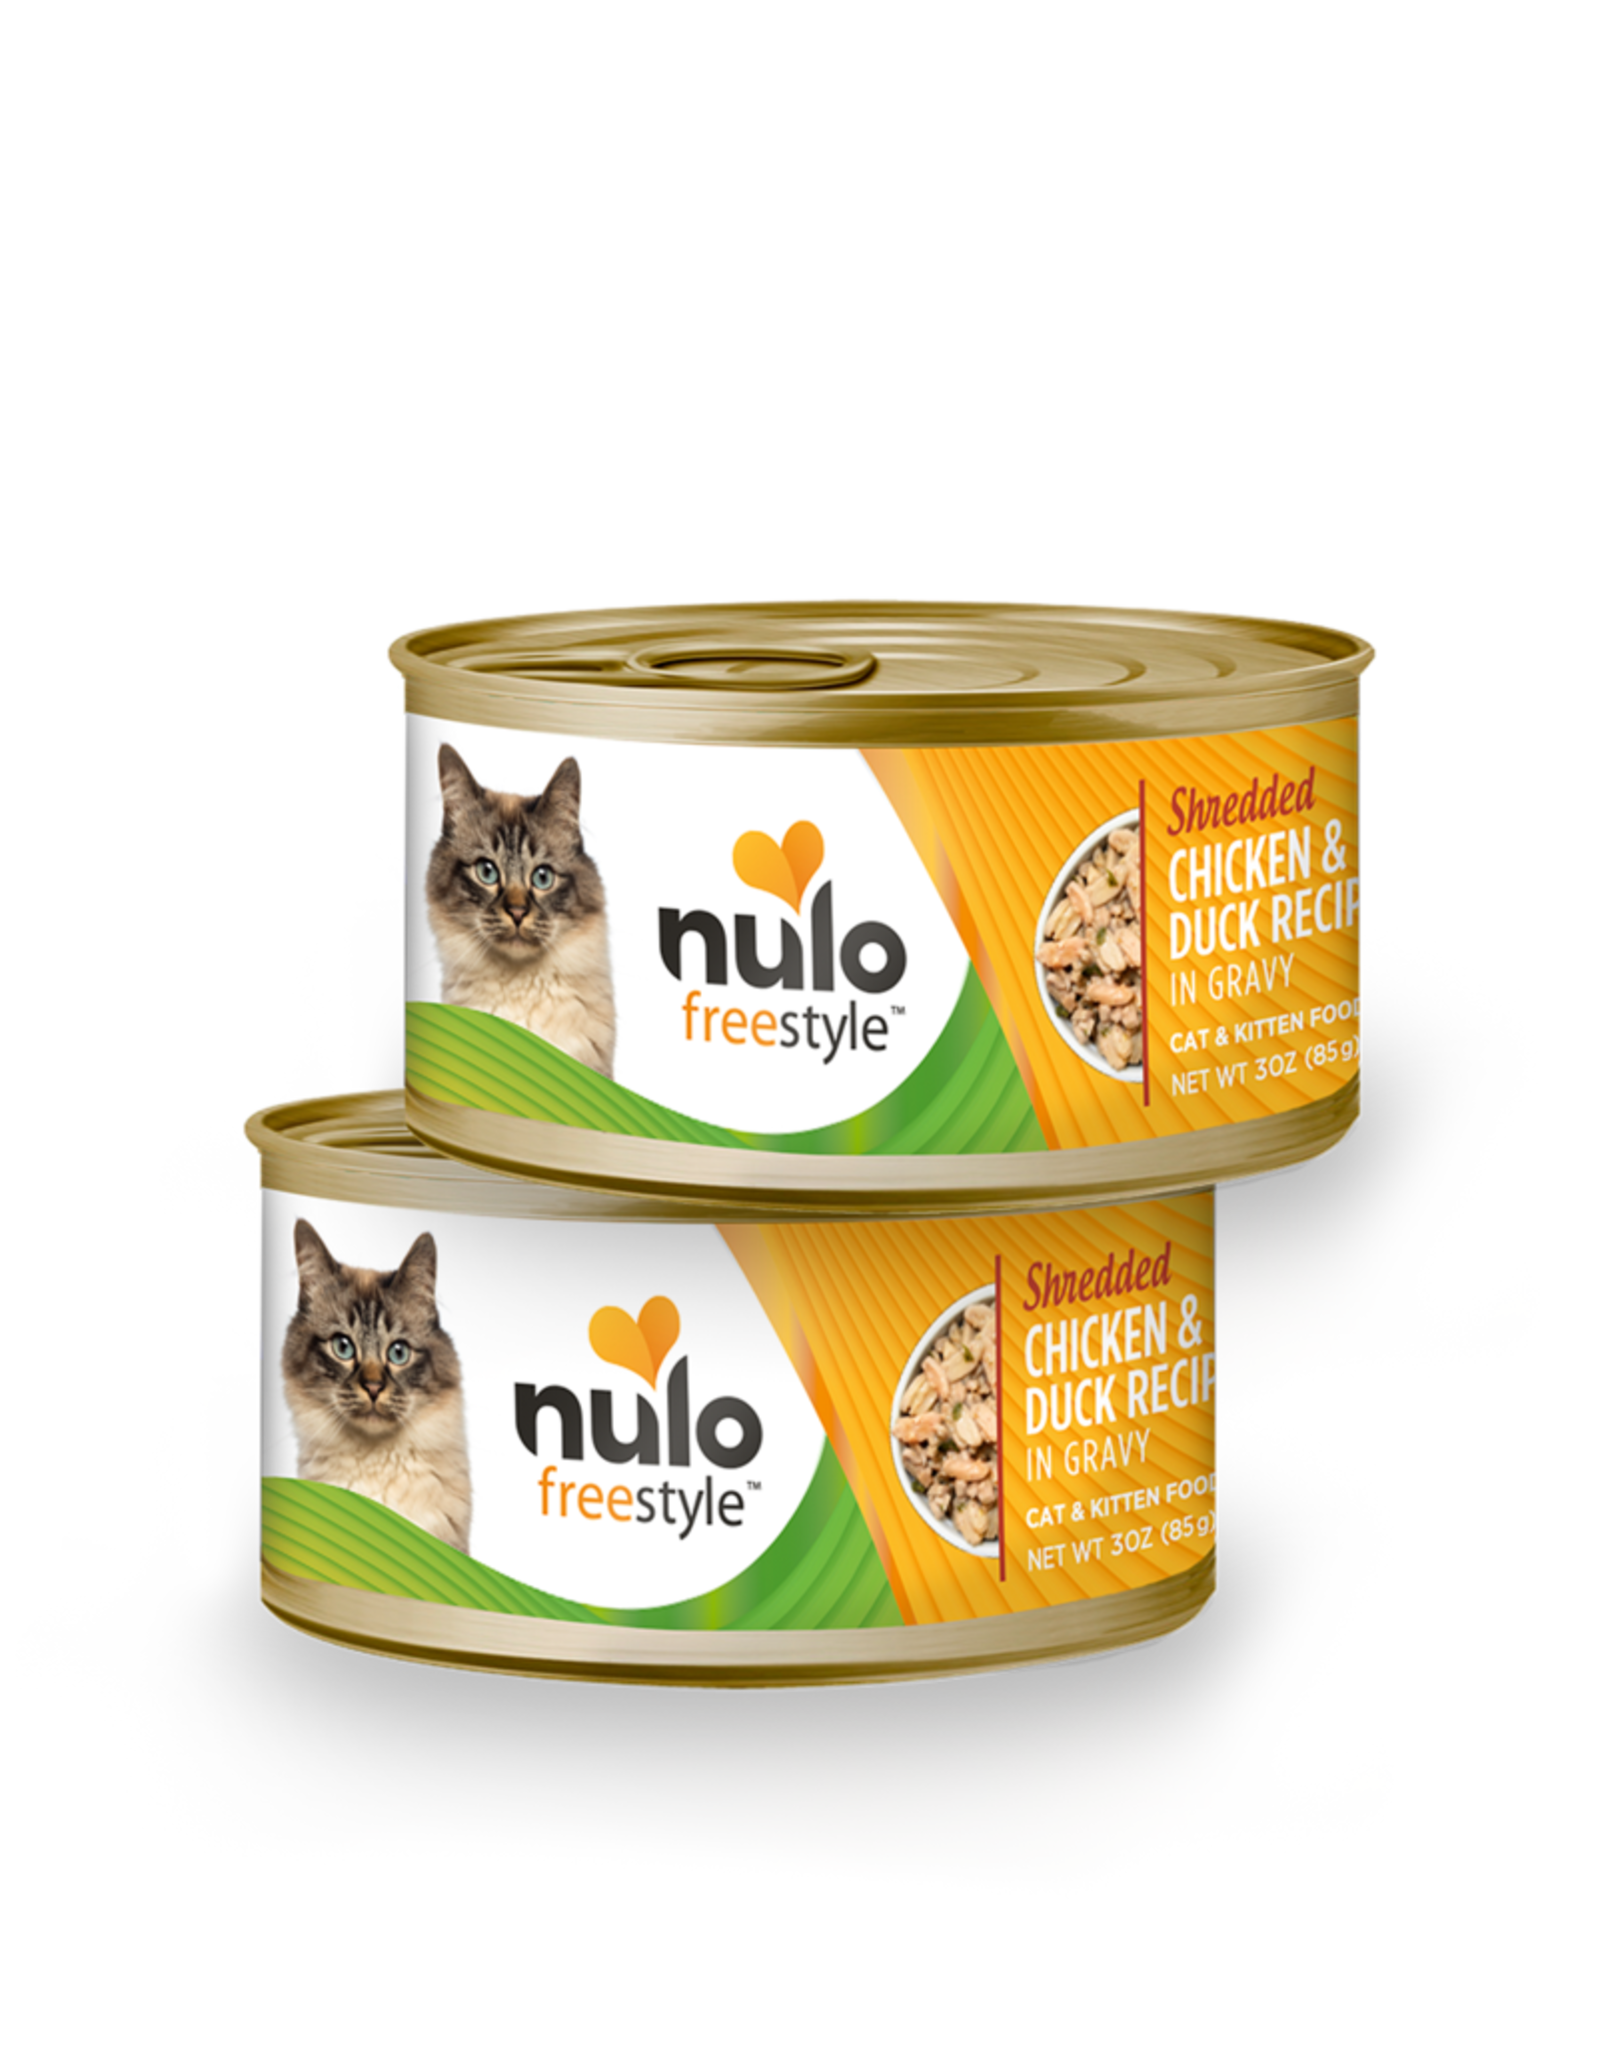 Nulo Nulo Freestyle Wet Cat Food Shredded Chicken & Duck Recipe in Gravy 3oz Can Grain Free